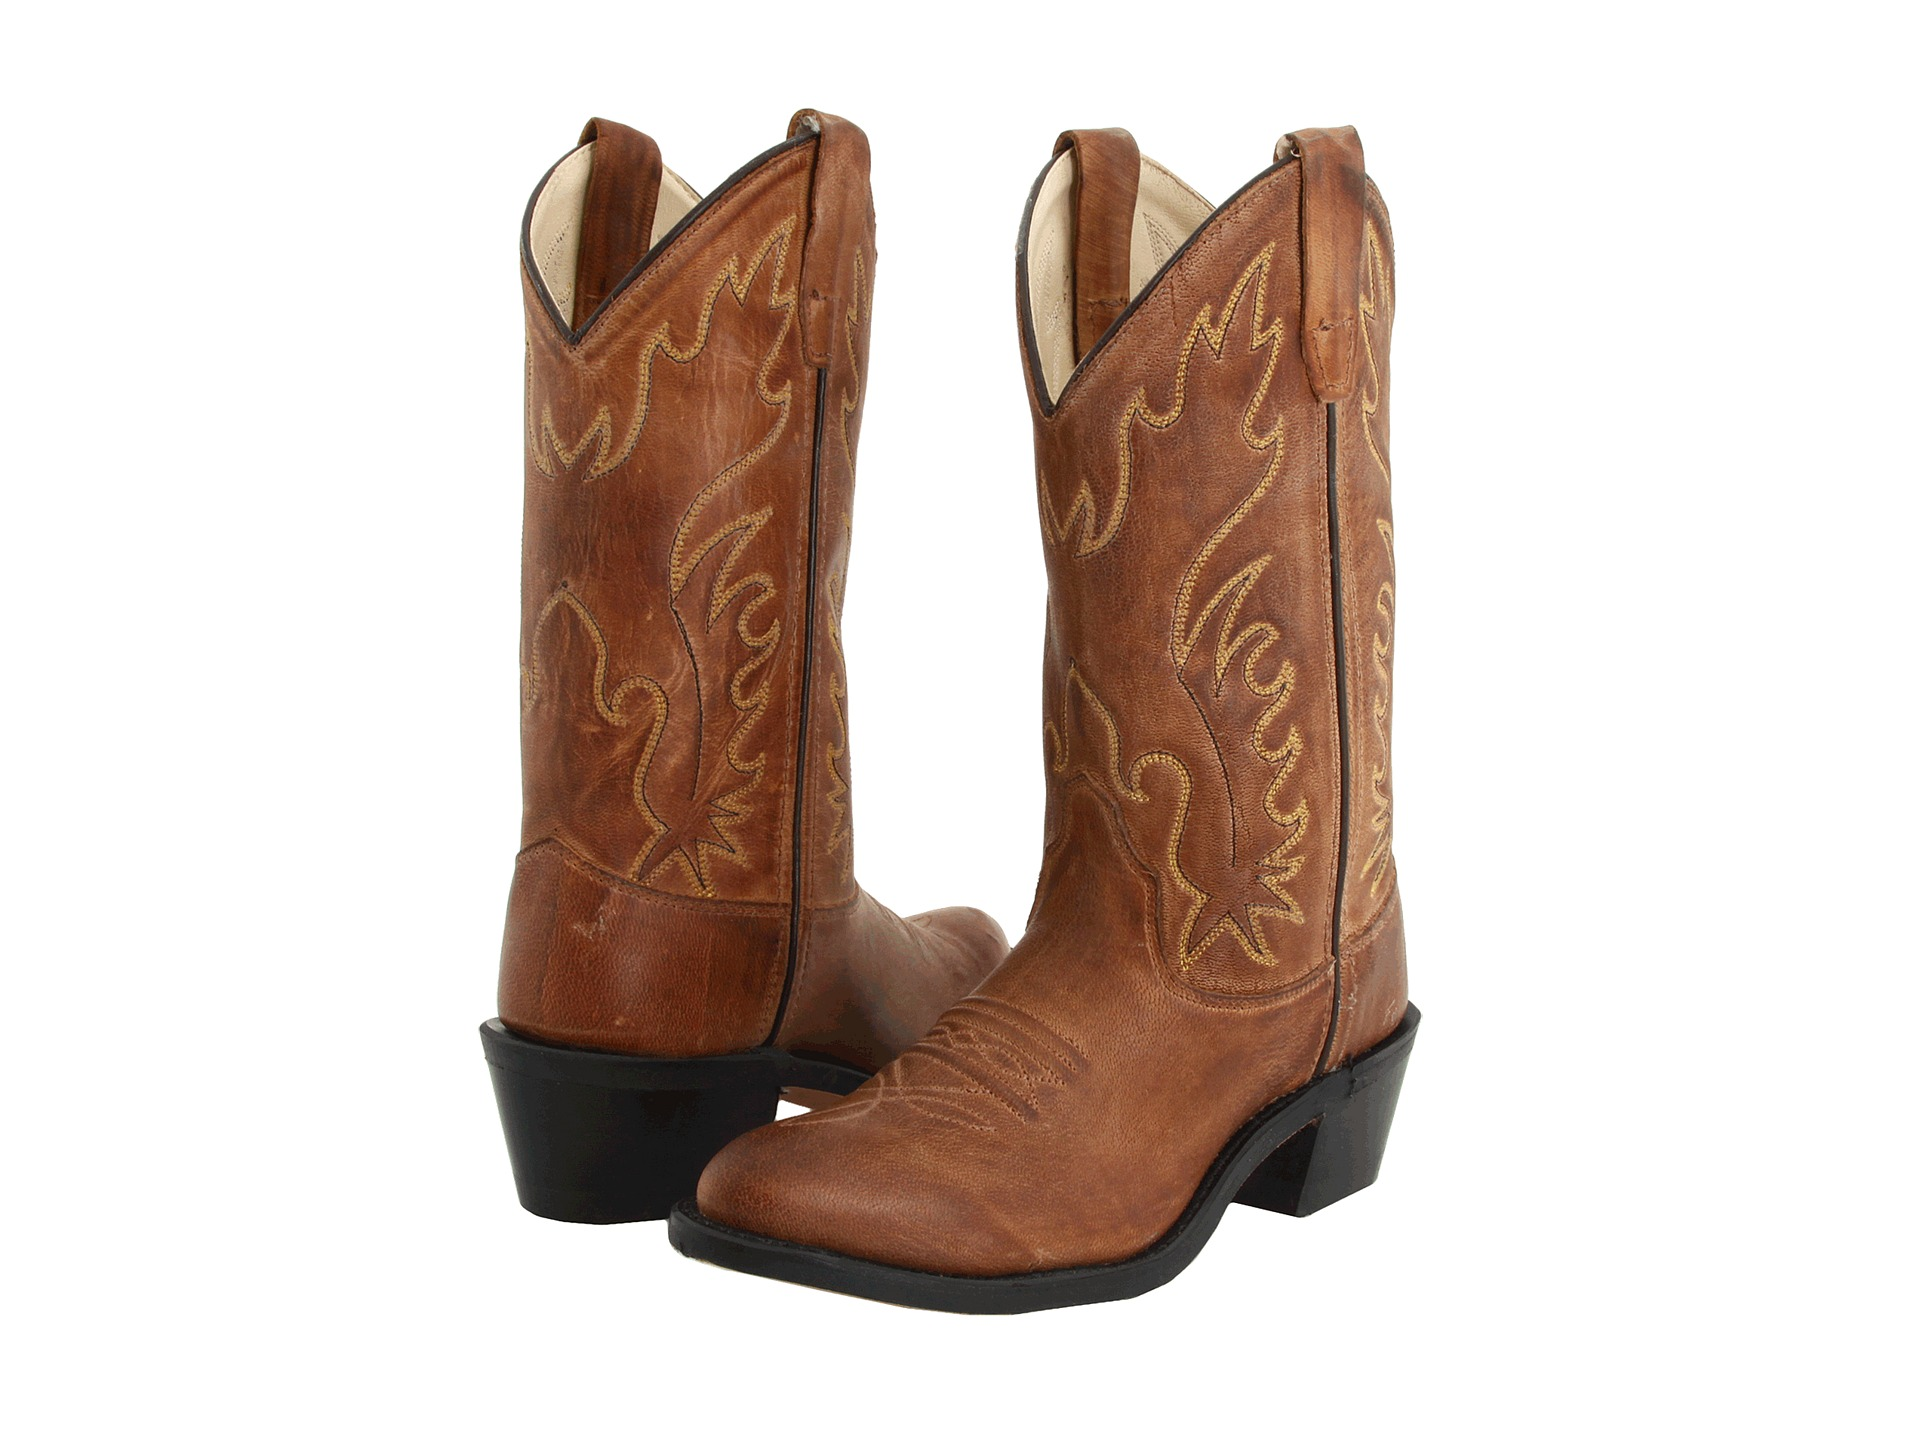 Cheap Cowgirl Boots For Kids KLptu9EL